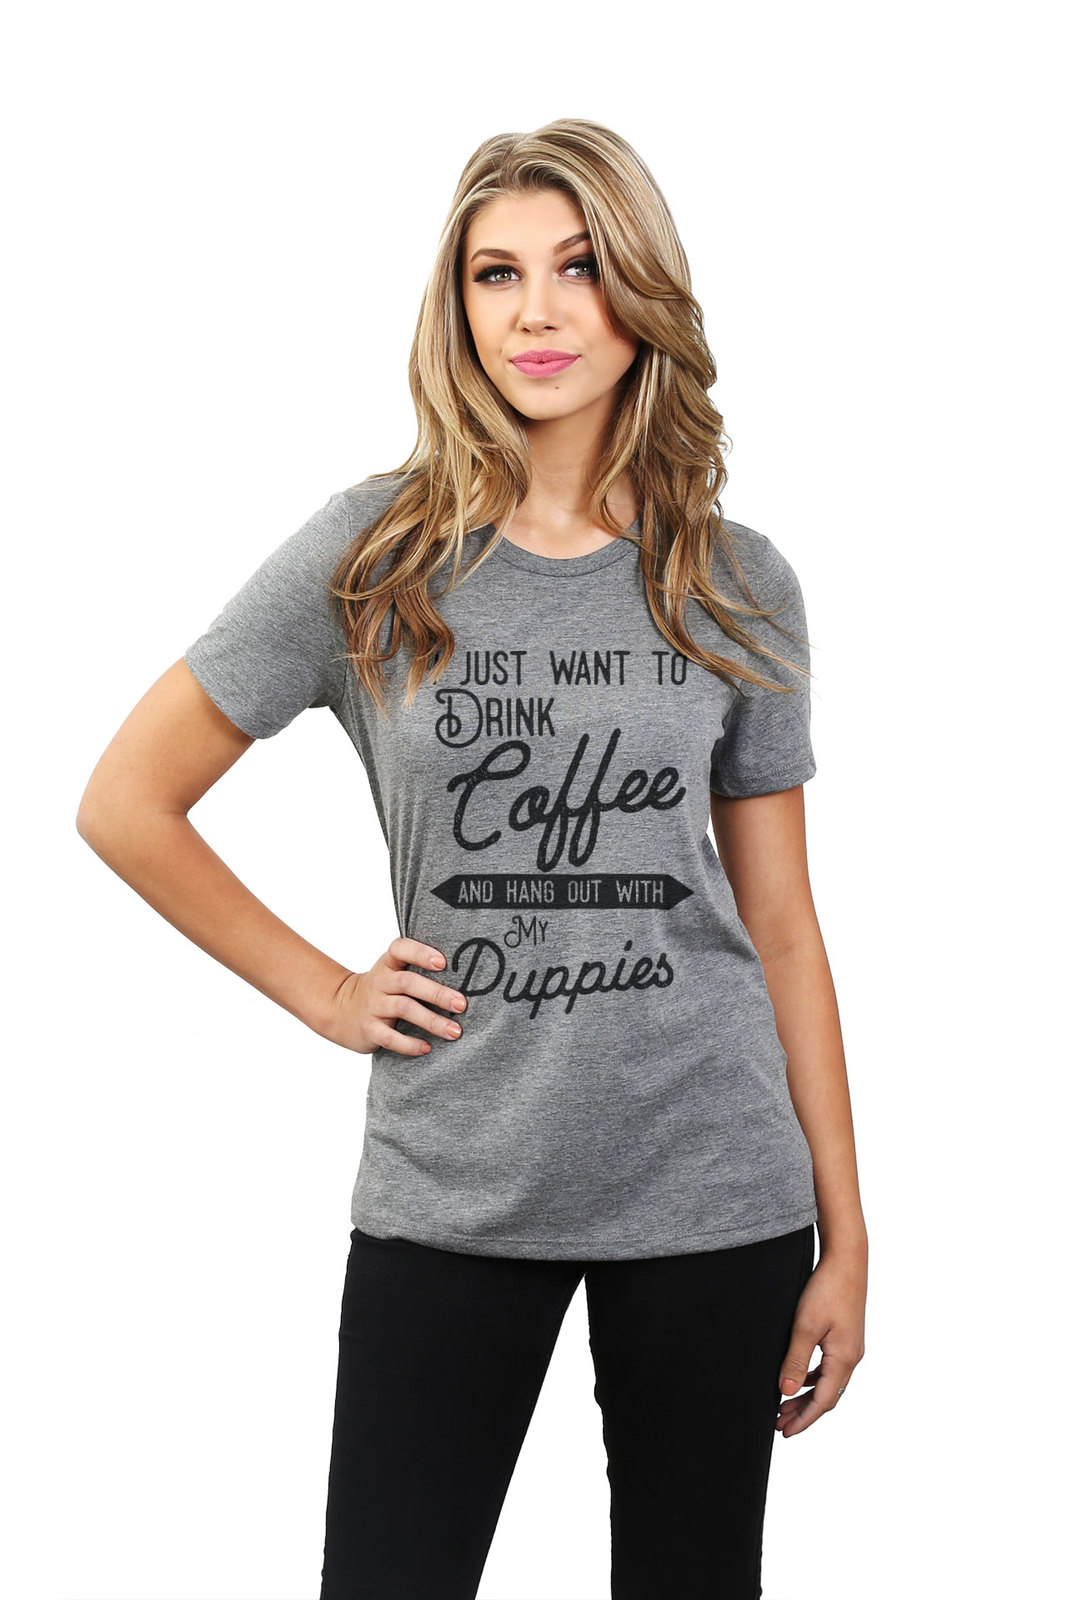 Thread Tank Hang Out With Puppies Women's Relaxed T-Shirt Tee Heather Grey